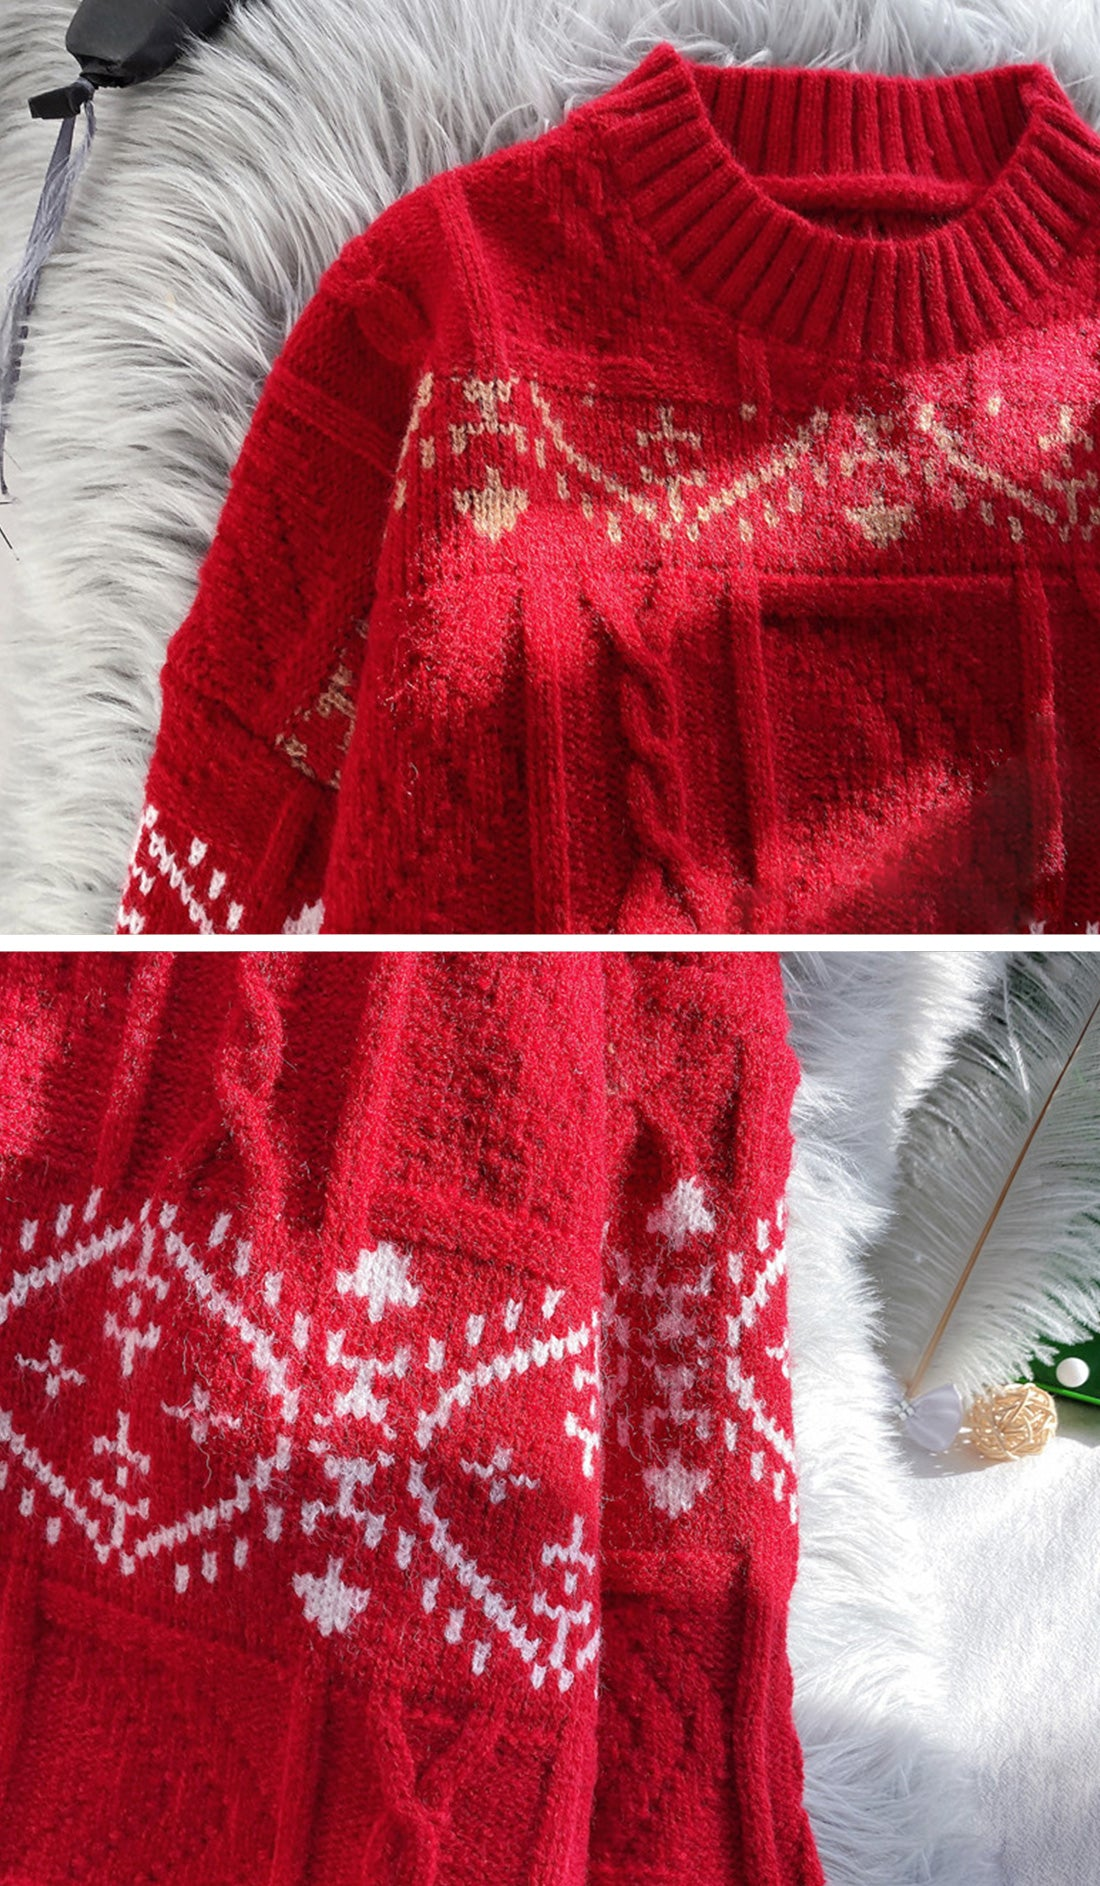 Sequin Vacation Trip Christmas Sweater Details 3